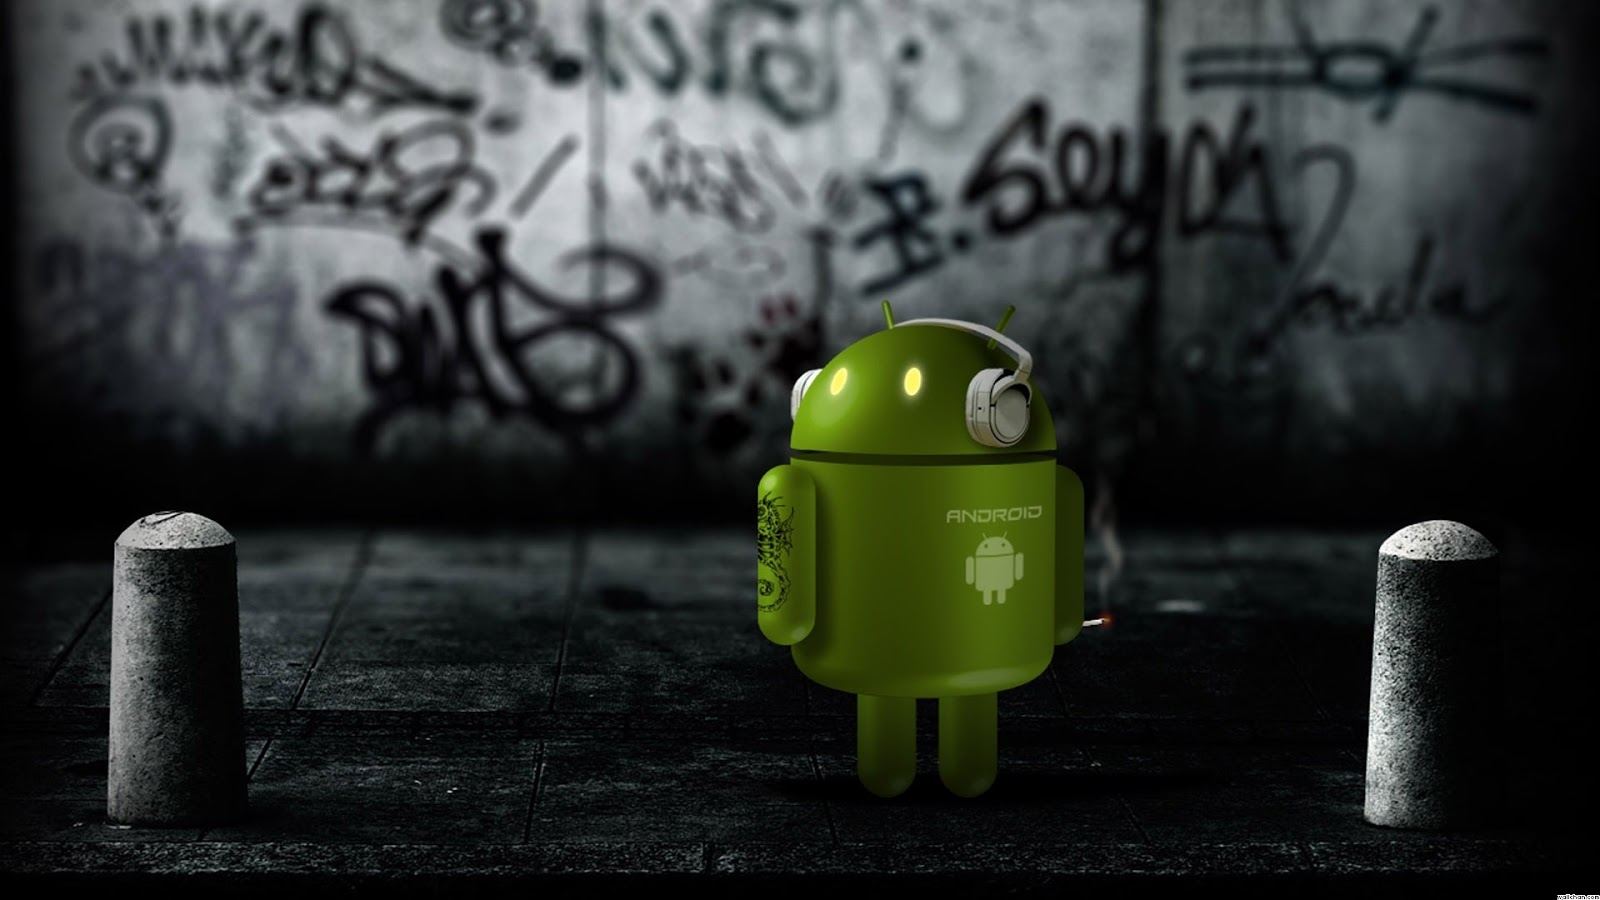 Cool HD Wallpapers of Android Logo